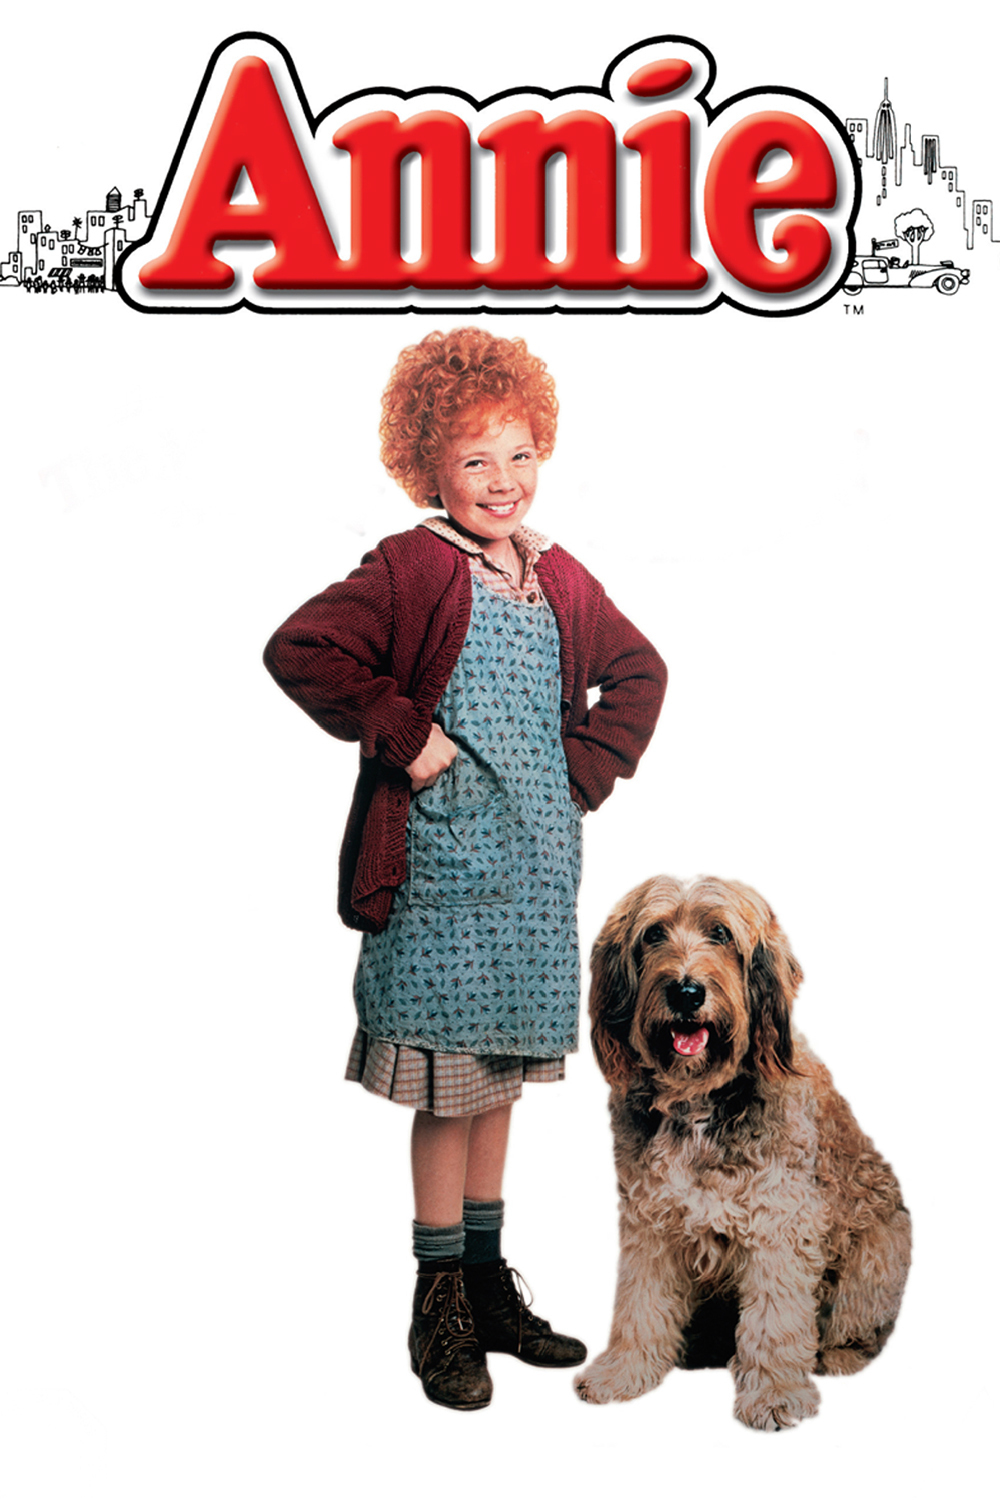 Citaten Annie Guide : Annie moviepedia fandom powered by wikia